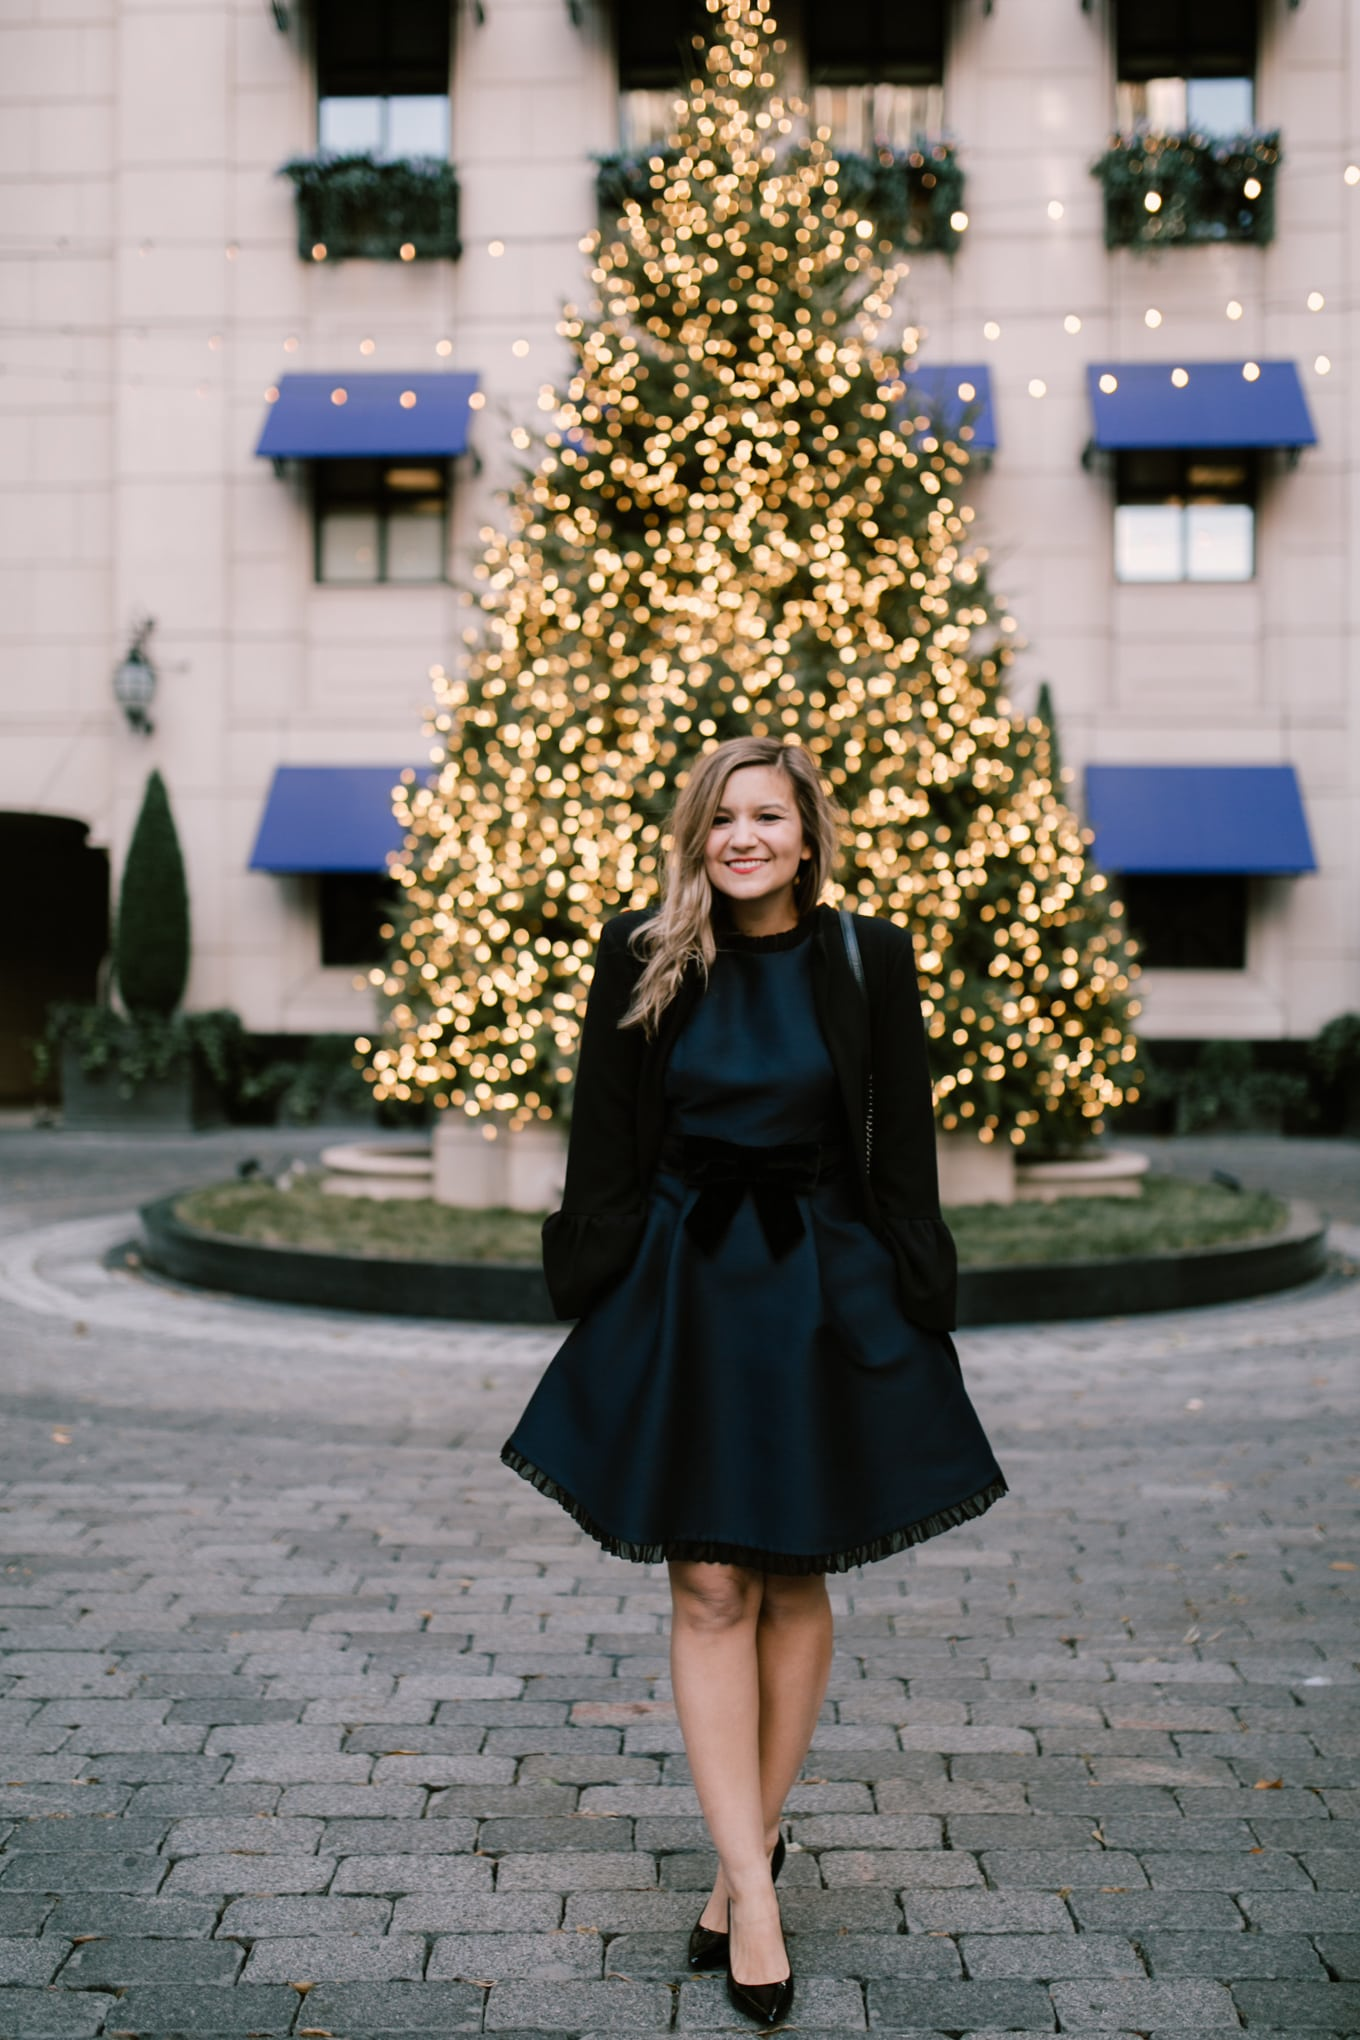 Christmas party outfit: Kate Spade velvet bow dress